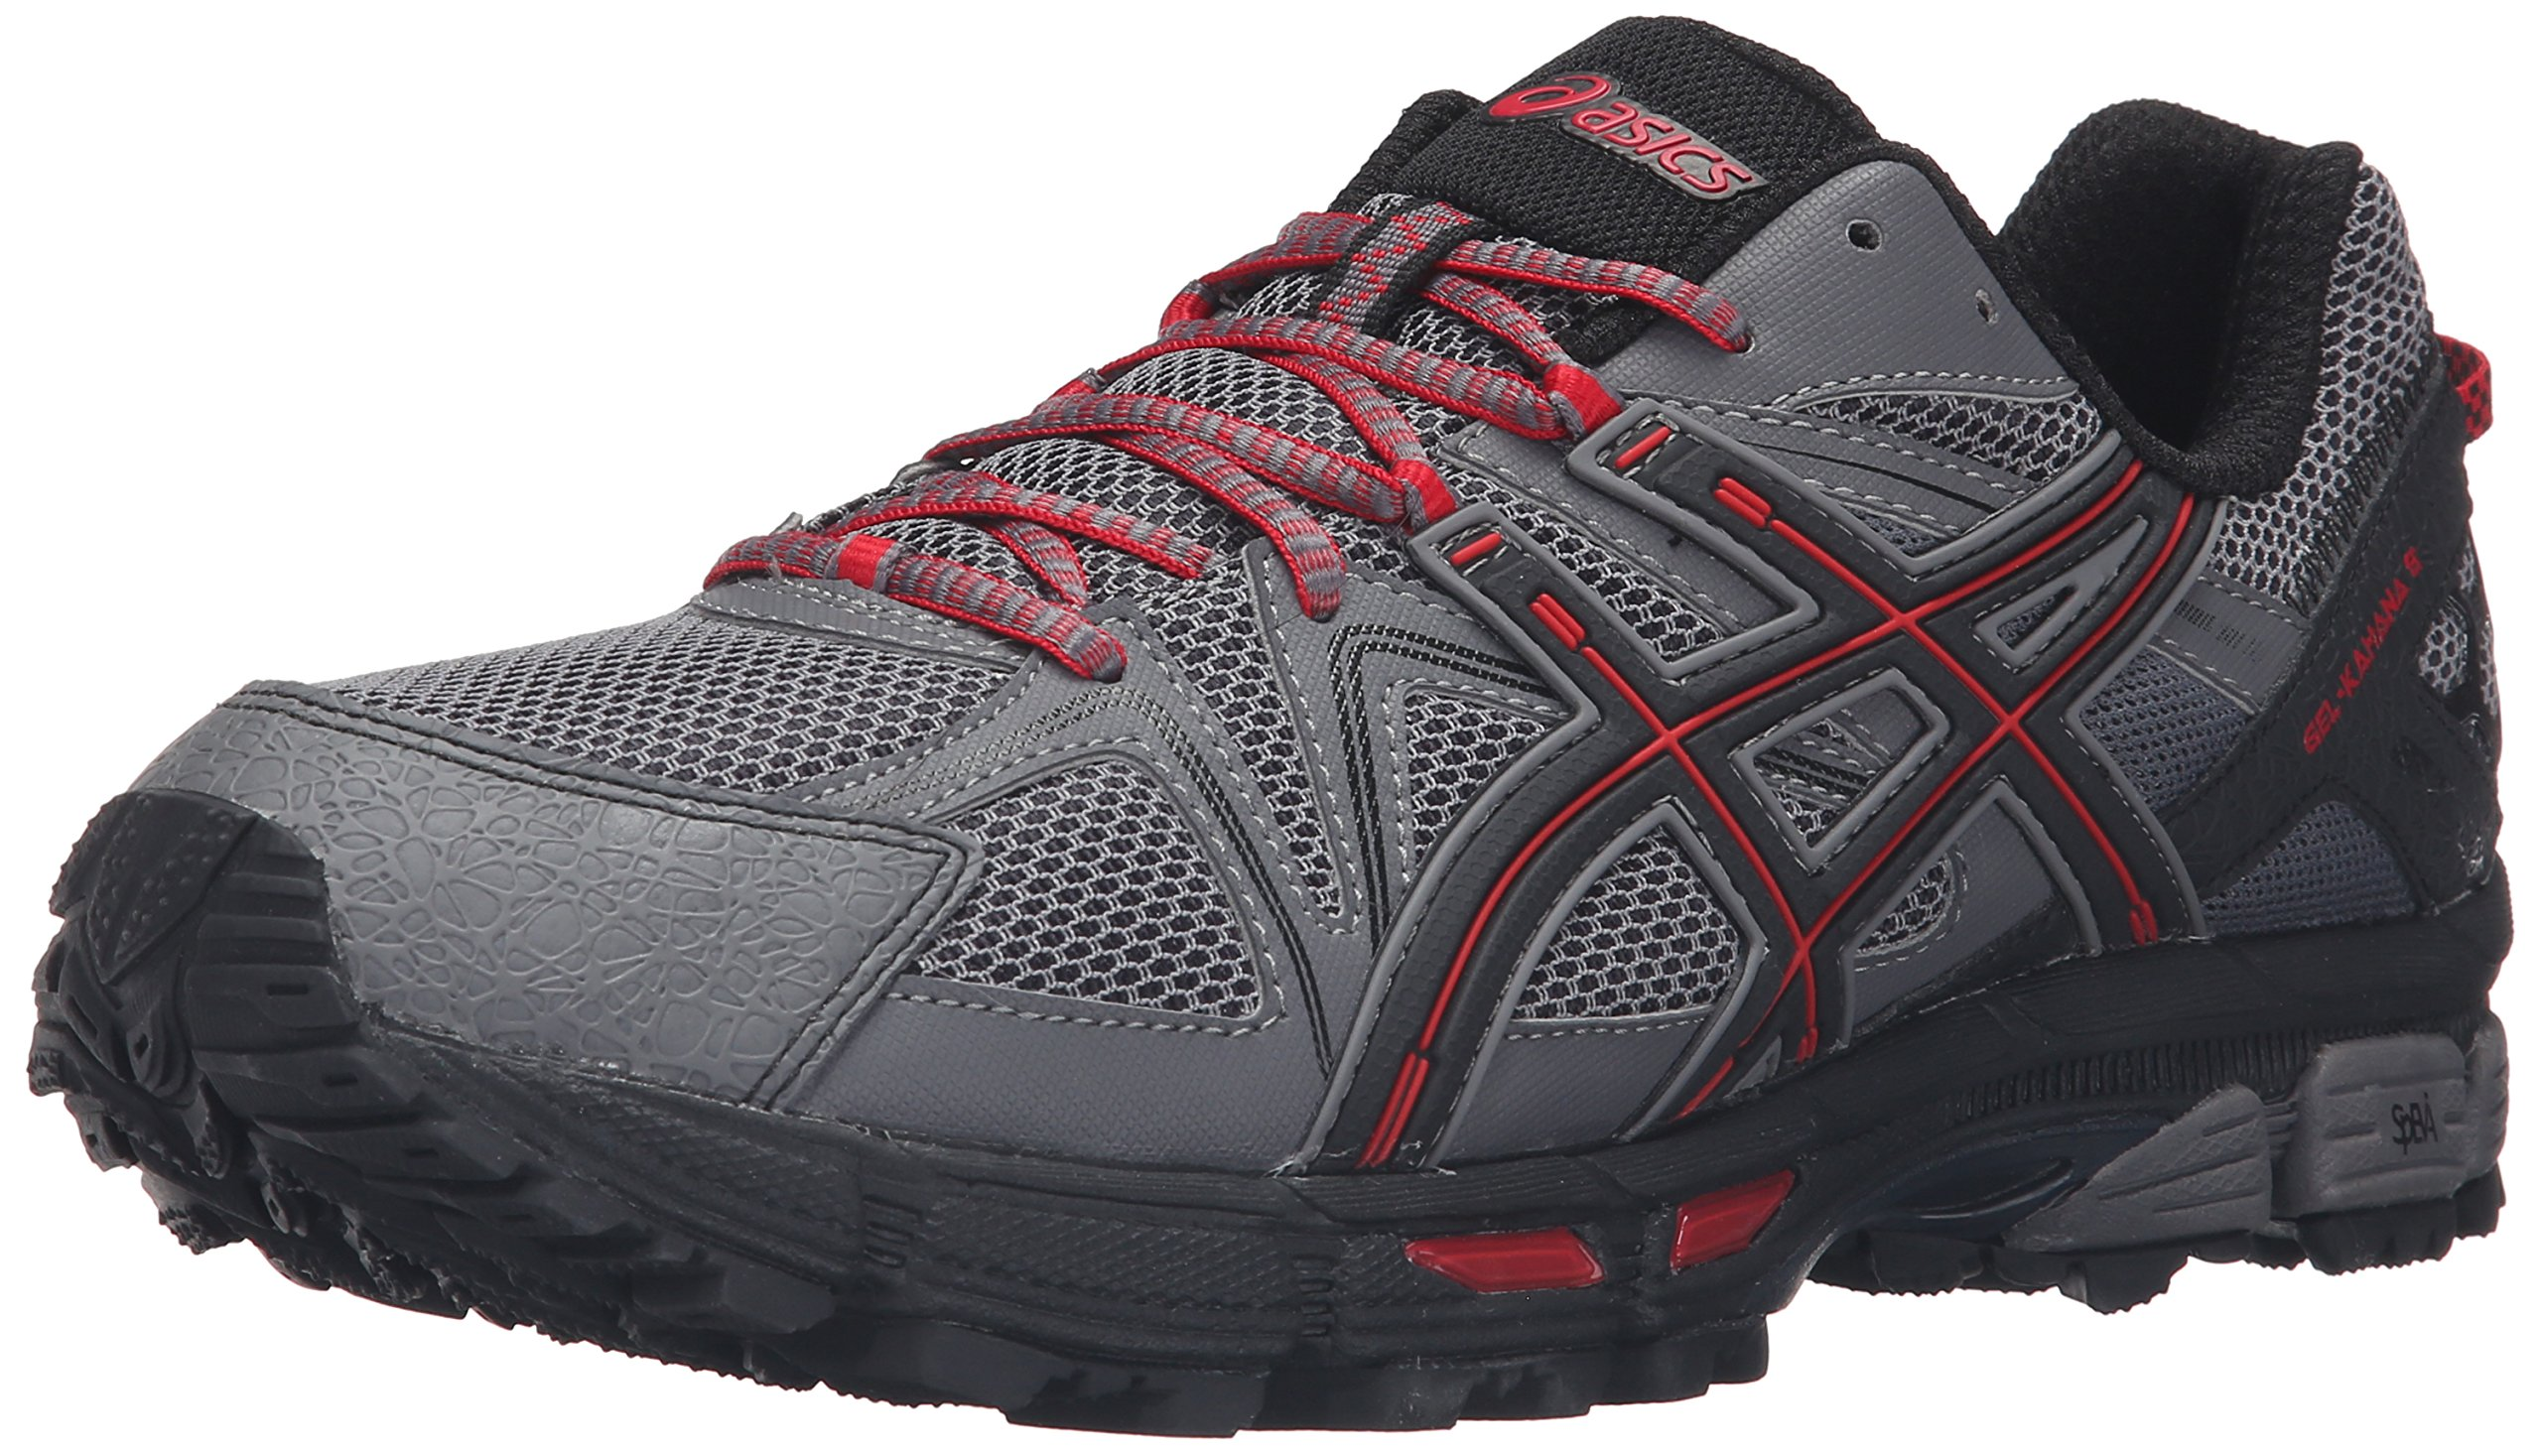 ASICS Men's Gel-Kahana 8 Trail Runner, Shark/Black/True Red, 13 M US by ASICS